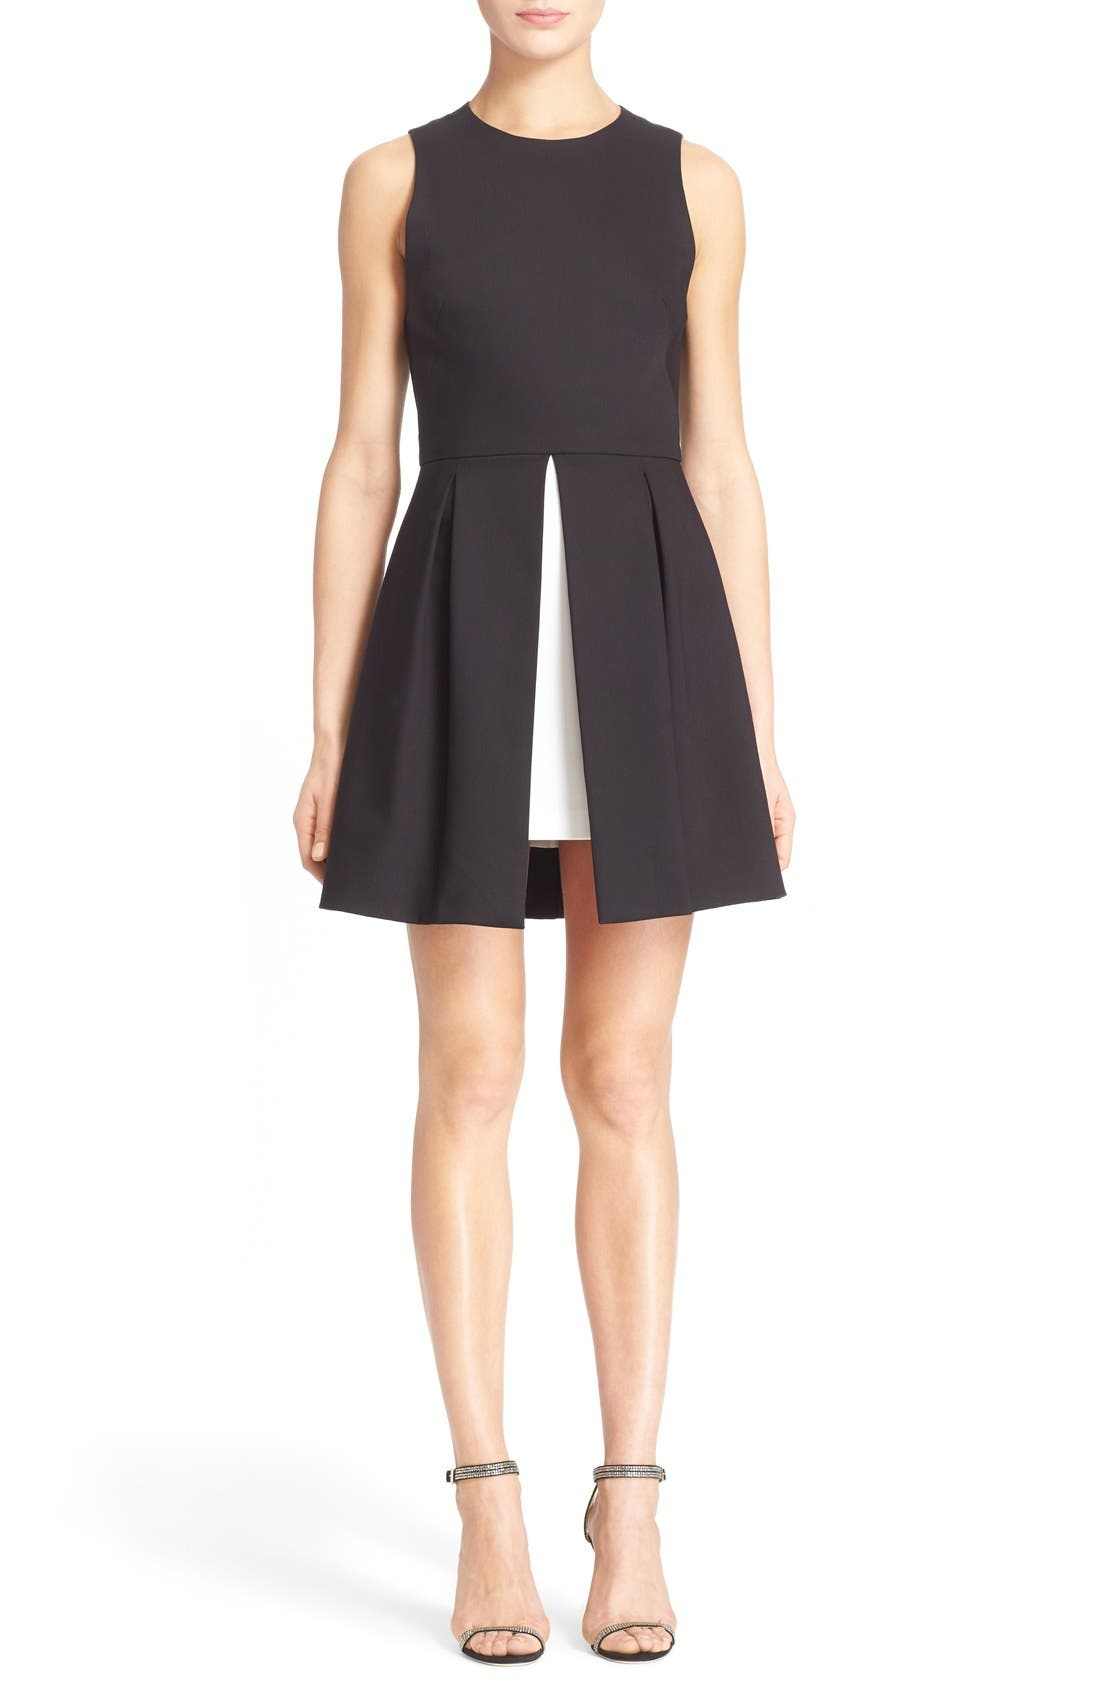 Alternate Image 1 Selected - Alice + Olivia 'Bria' Peplum Fit & Flare Dress